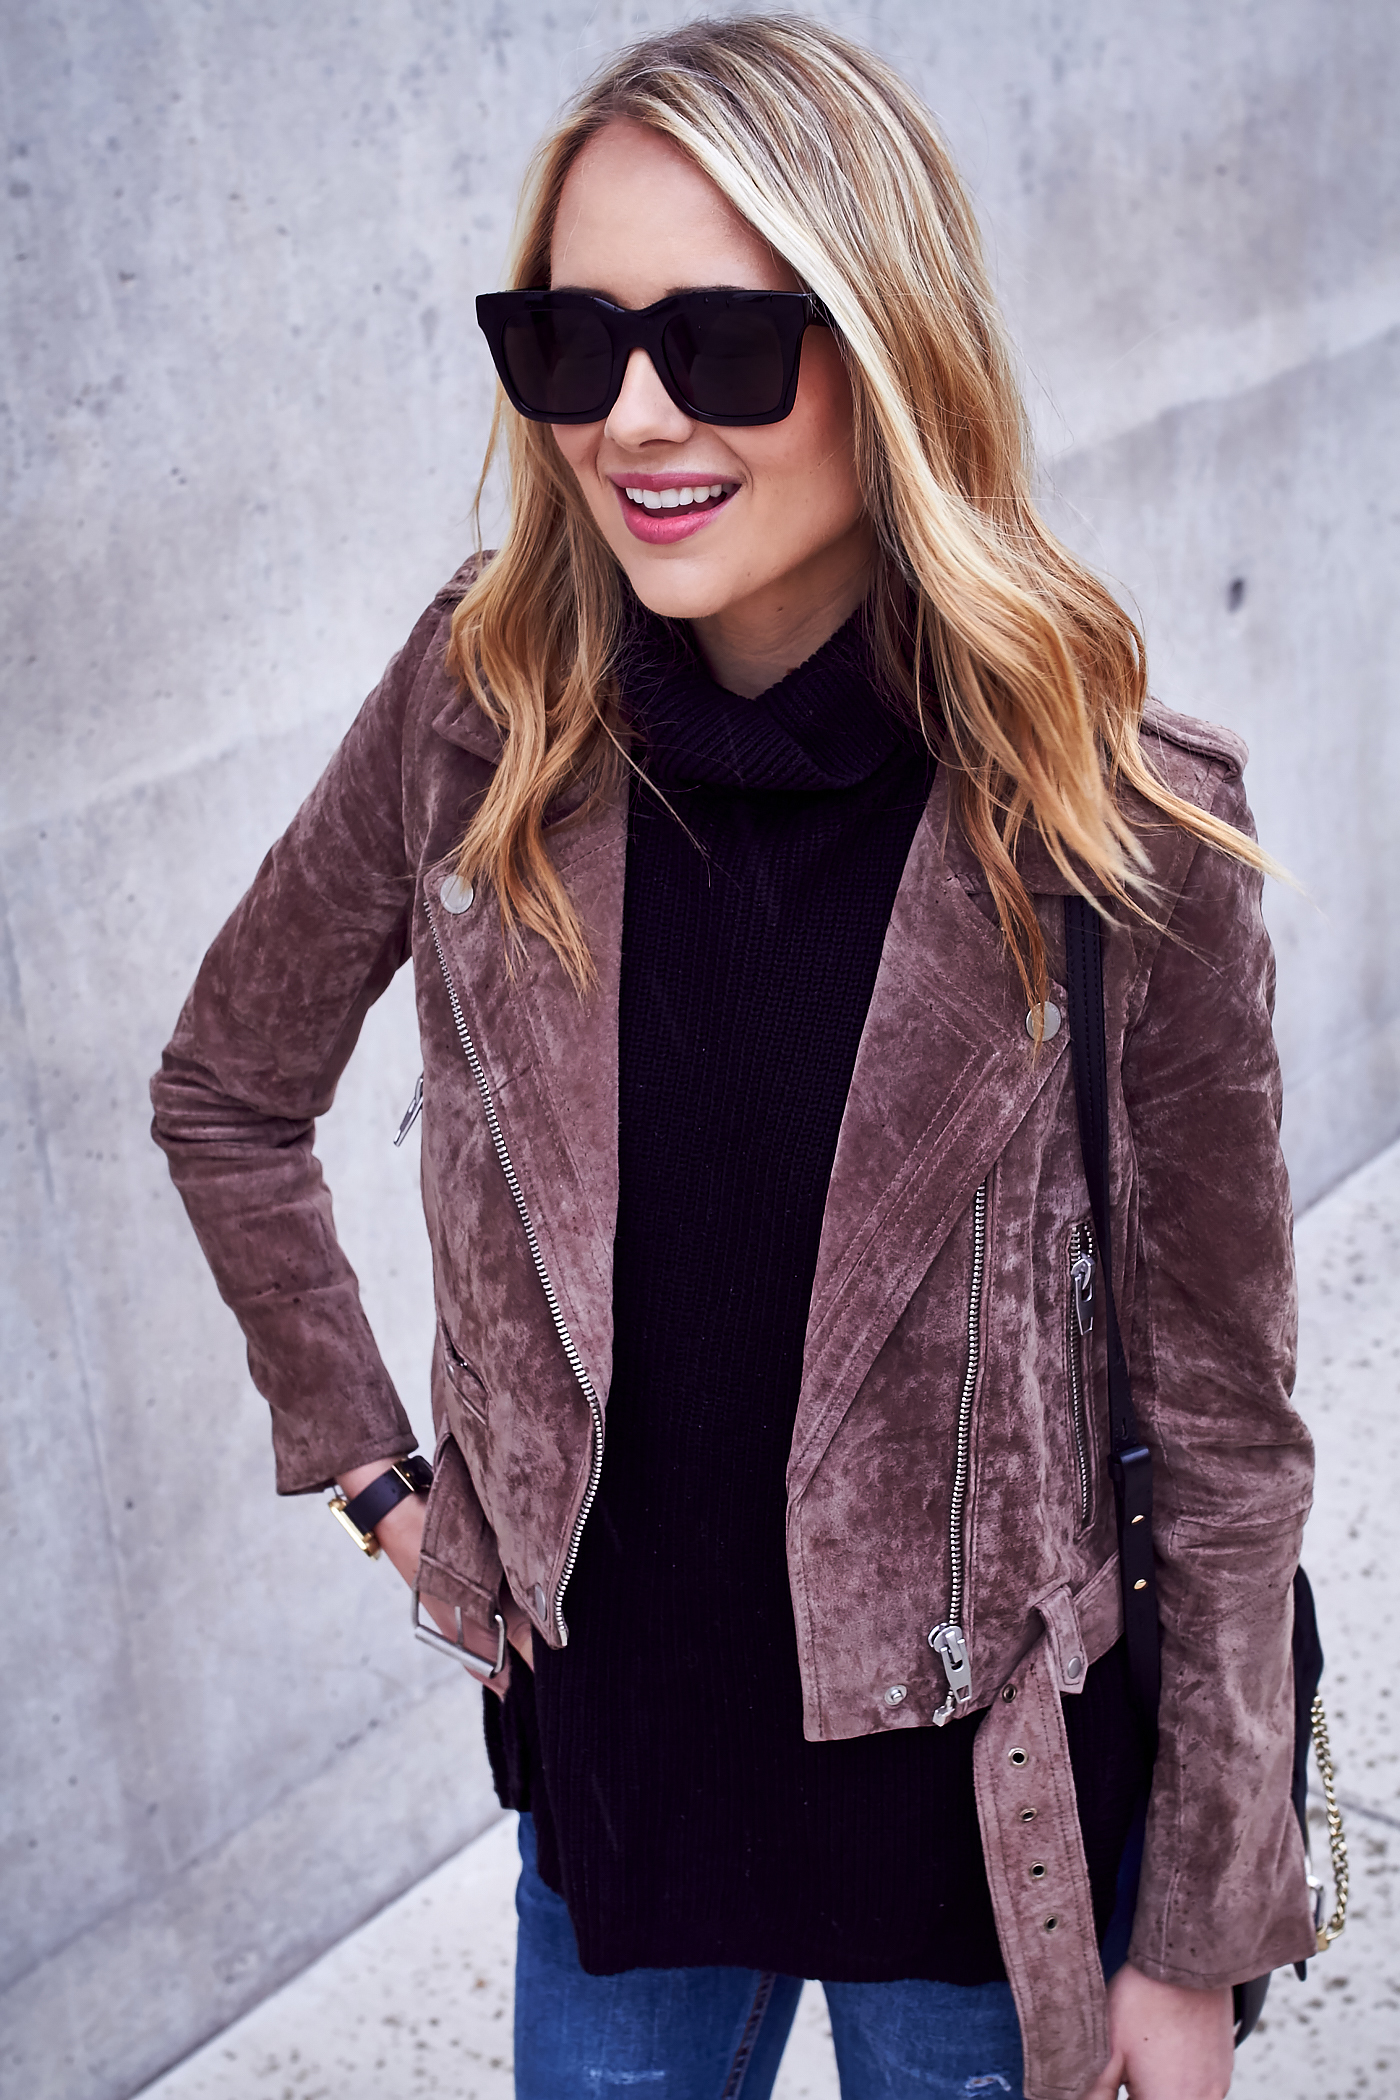 fashion-jackson-black-celine-sunglasses-blanknyc-morning-suede-moto-jacket-black-turtleneck-sweater